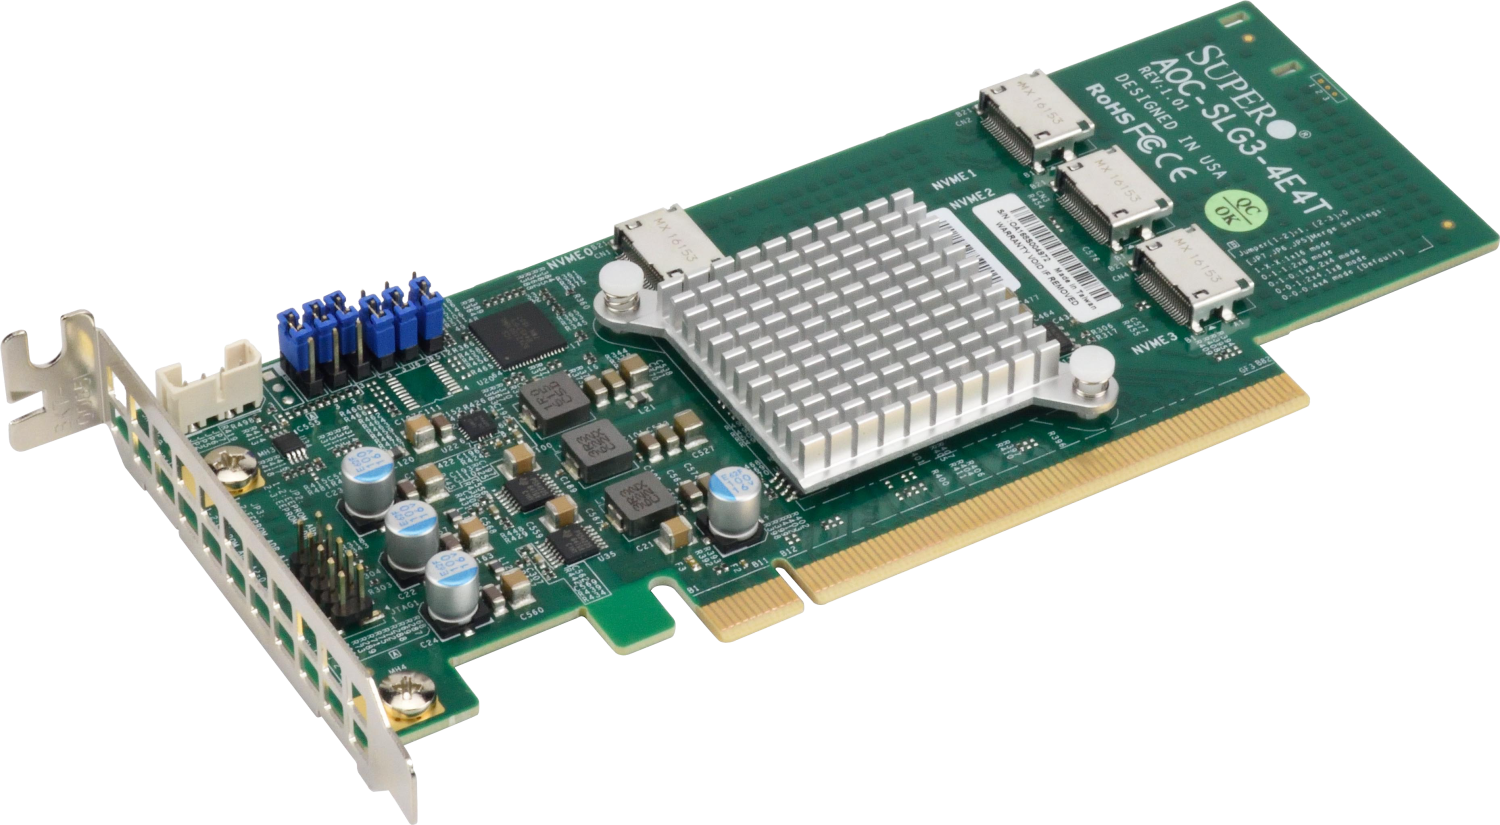 Плата коммуникационная SuperMicro Quad port OCuLink retimer NVMe SSD add-on card for PCIe3 x16 slot